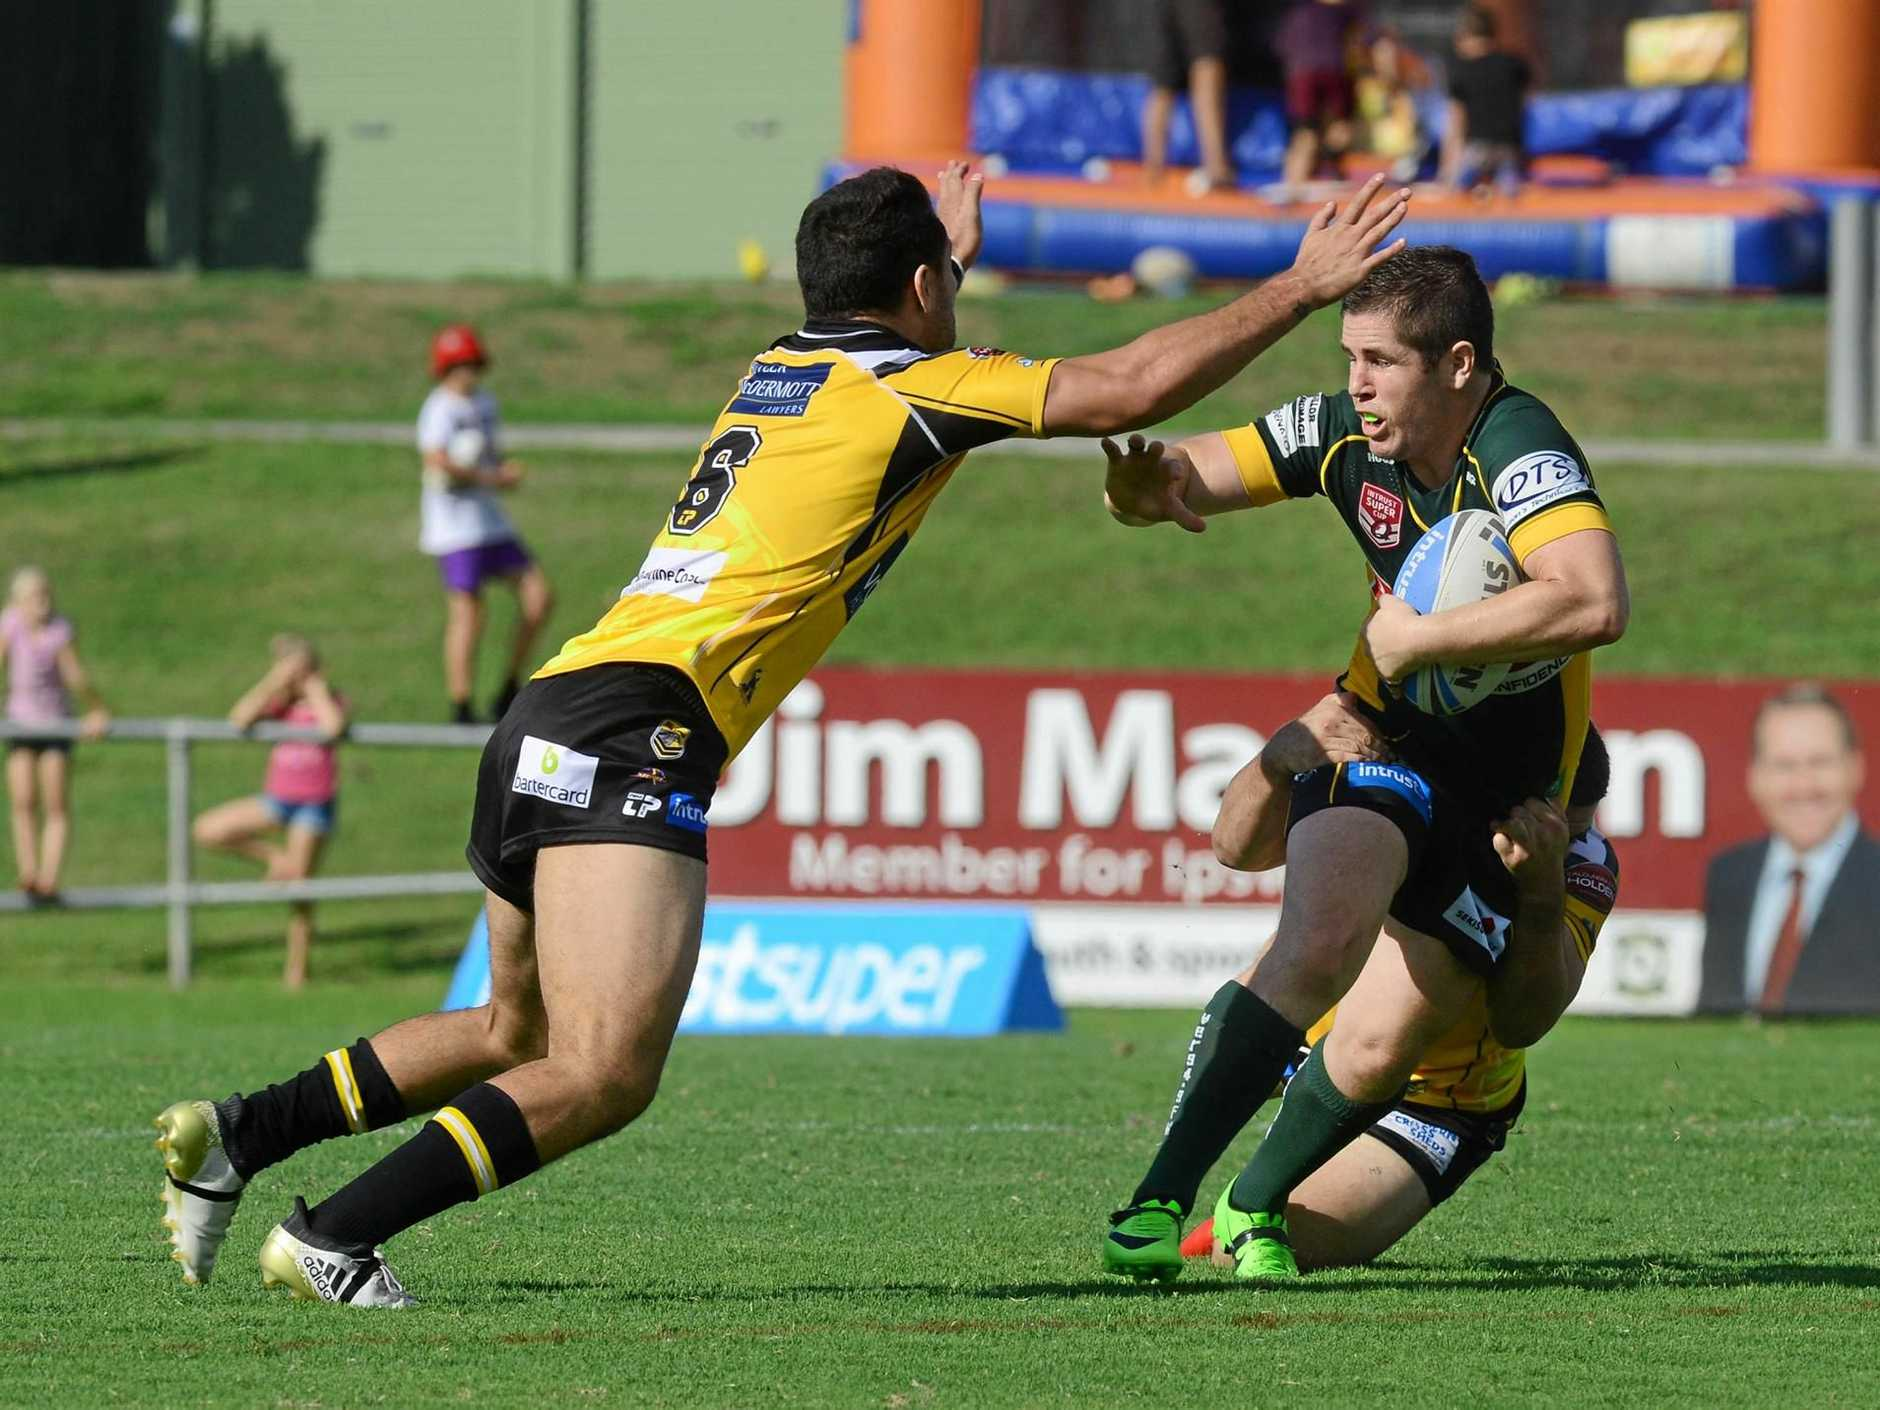 TIME TO SHINE: The Ipswich Jets will need to shrug off a recent run of poor form if they want to upset the third-placed Easts Tigers in tomorrow's XXXX Rivalry Round at North Ipswich Reserve.